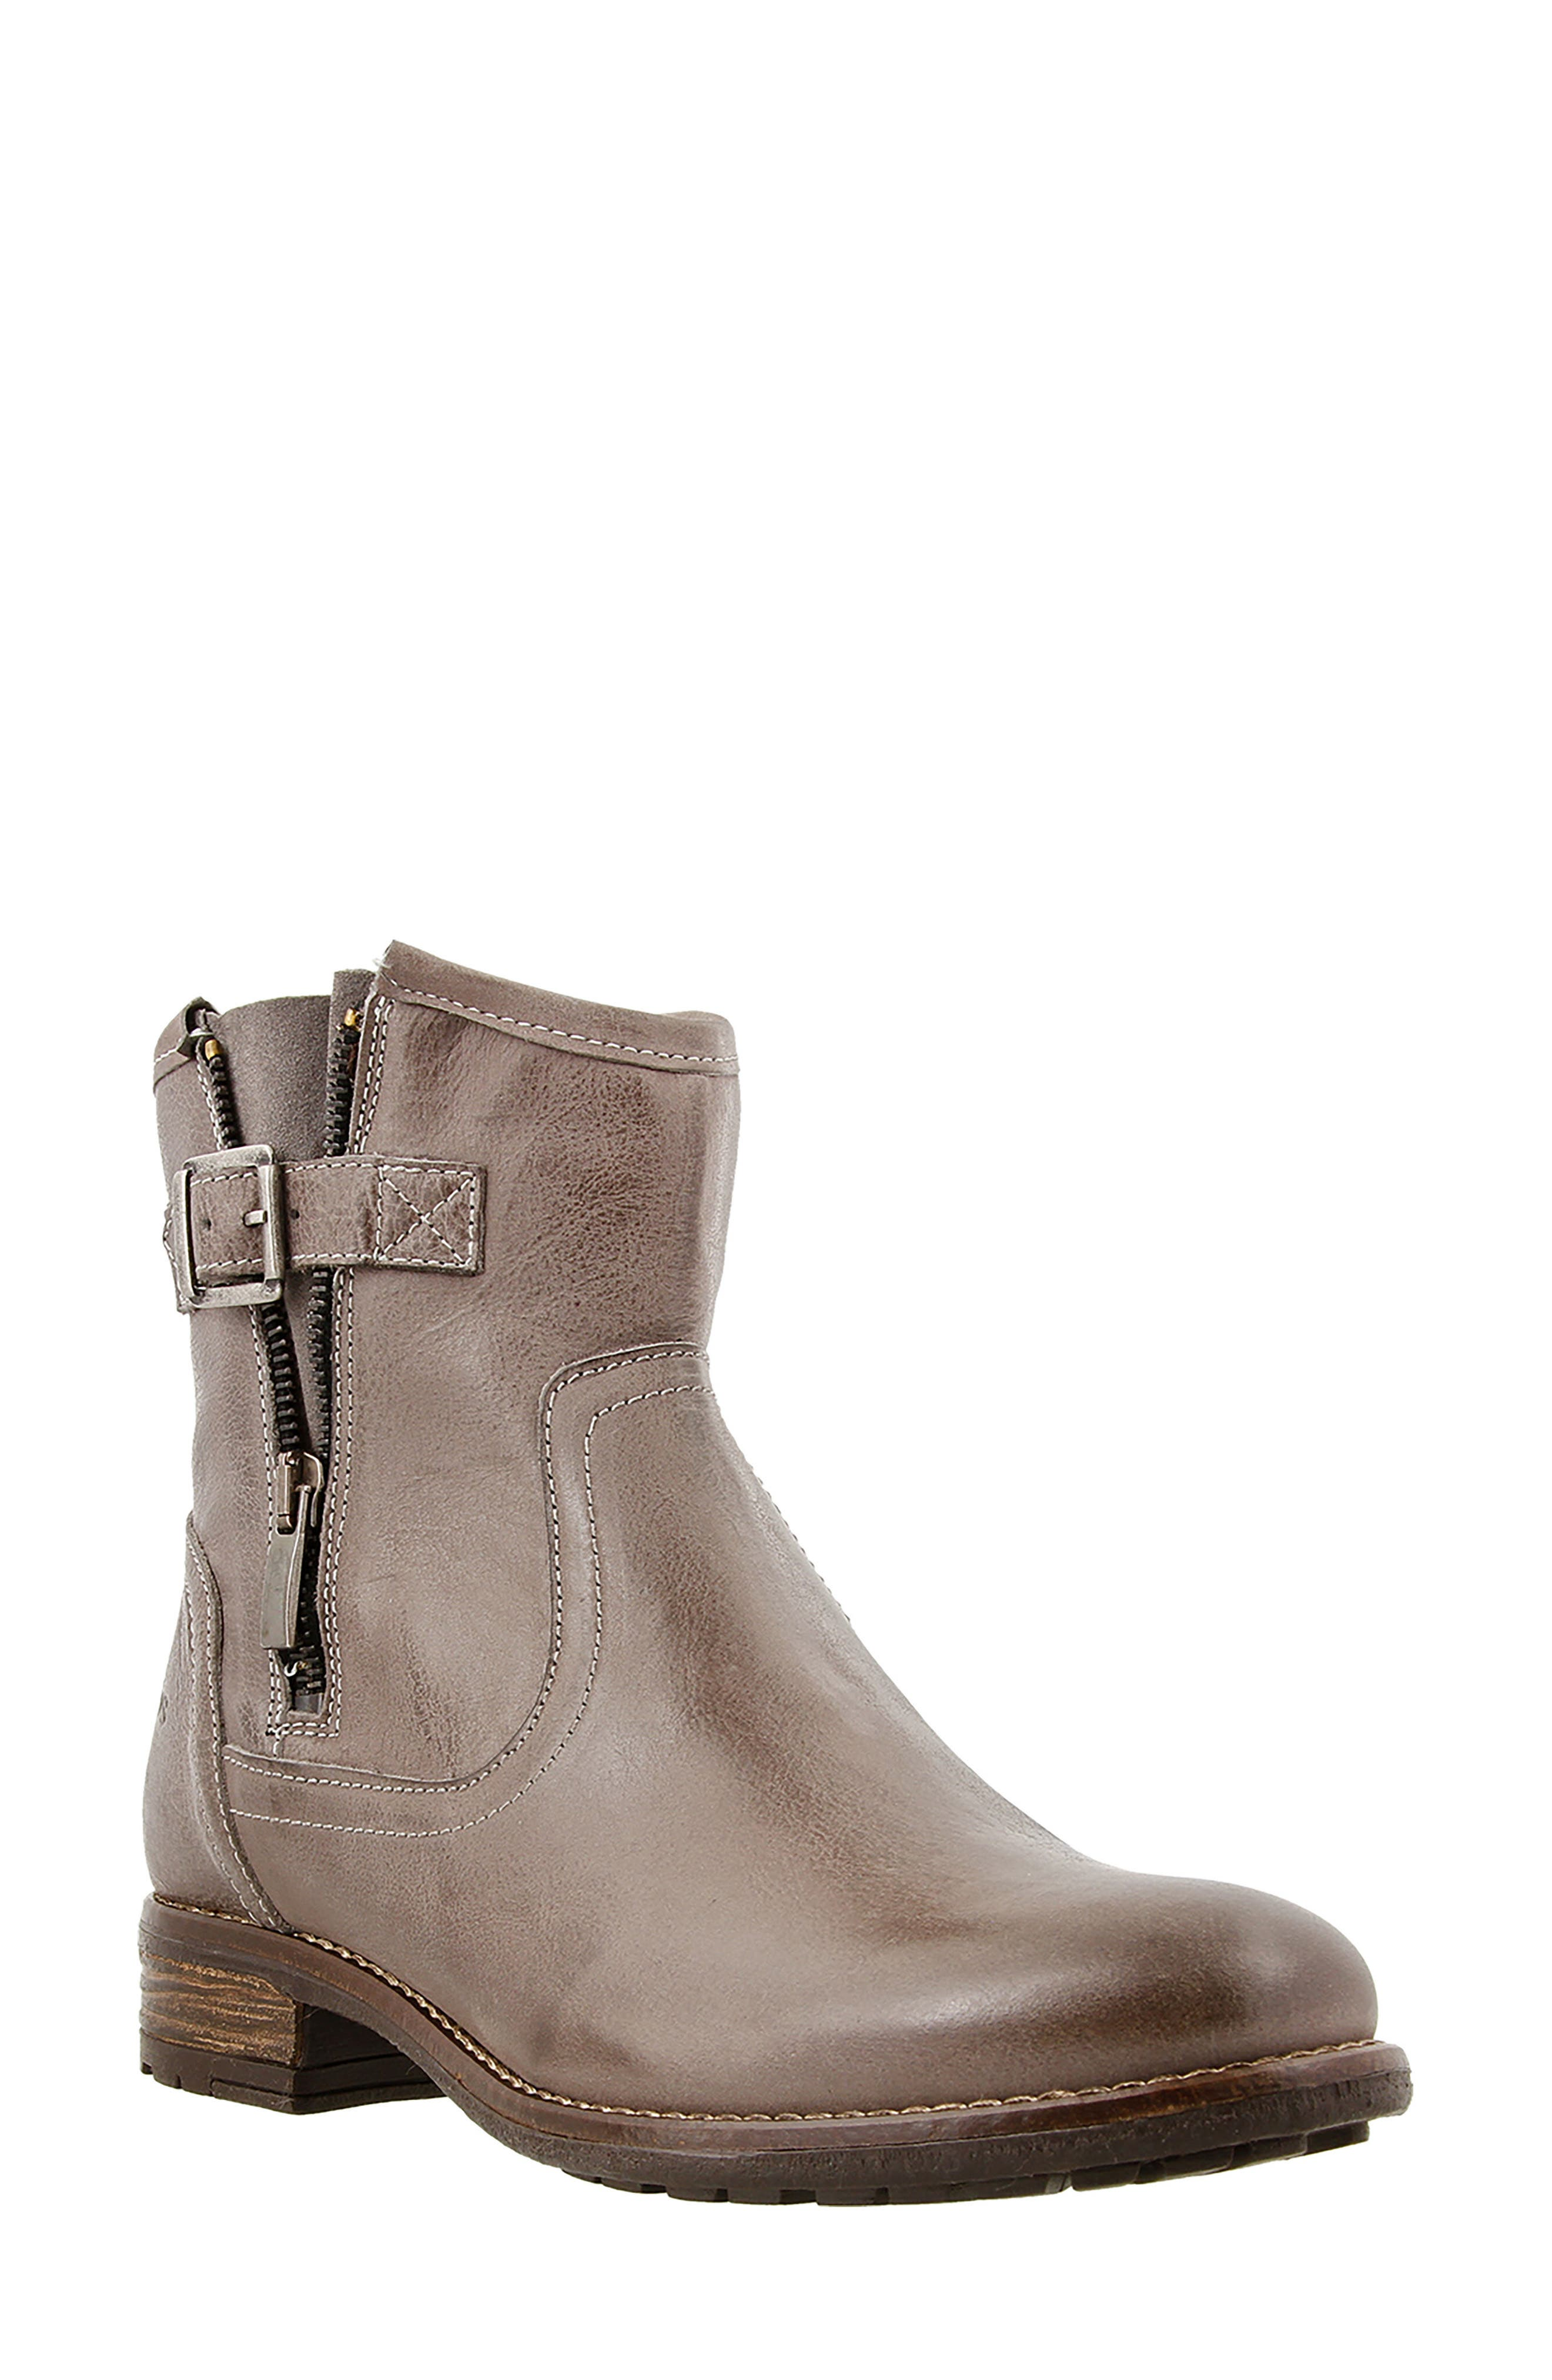 Convoy Boot,                         Main,                         color, GREY LEATHER